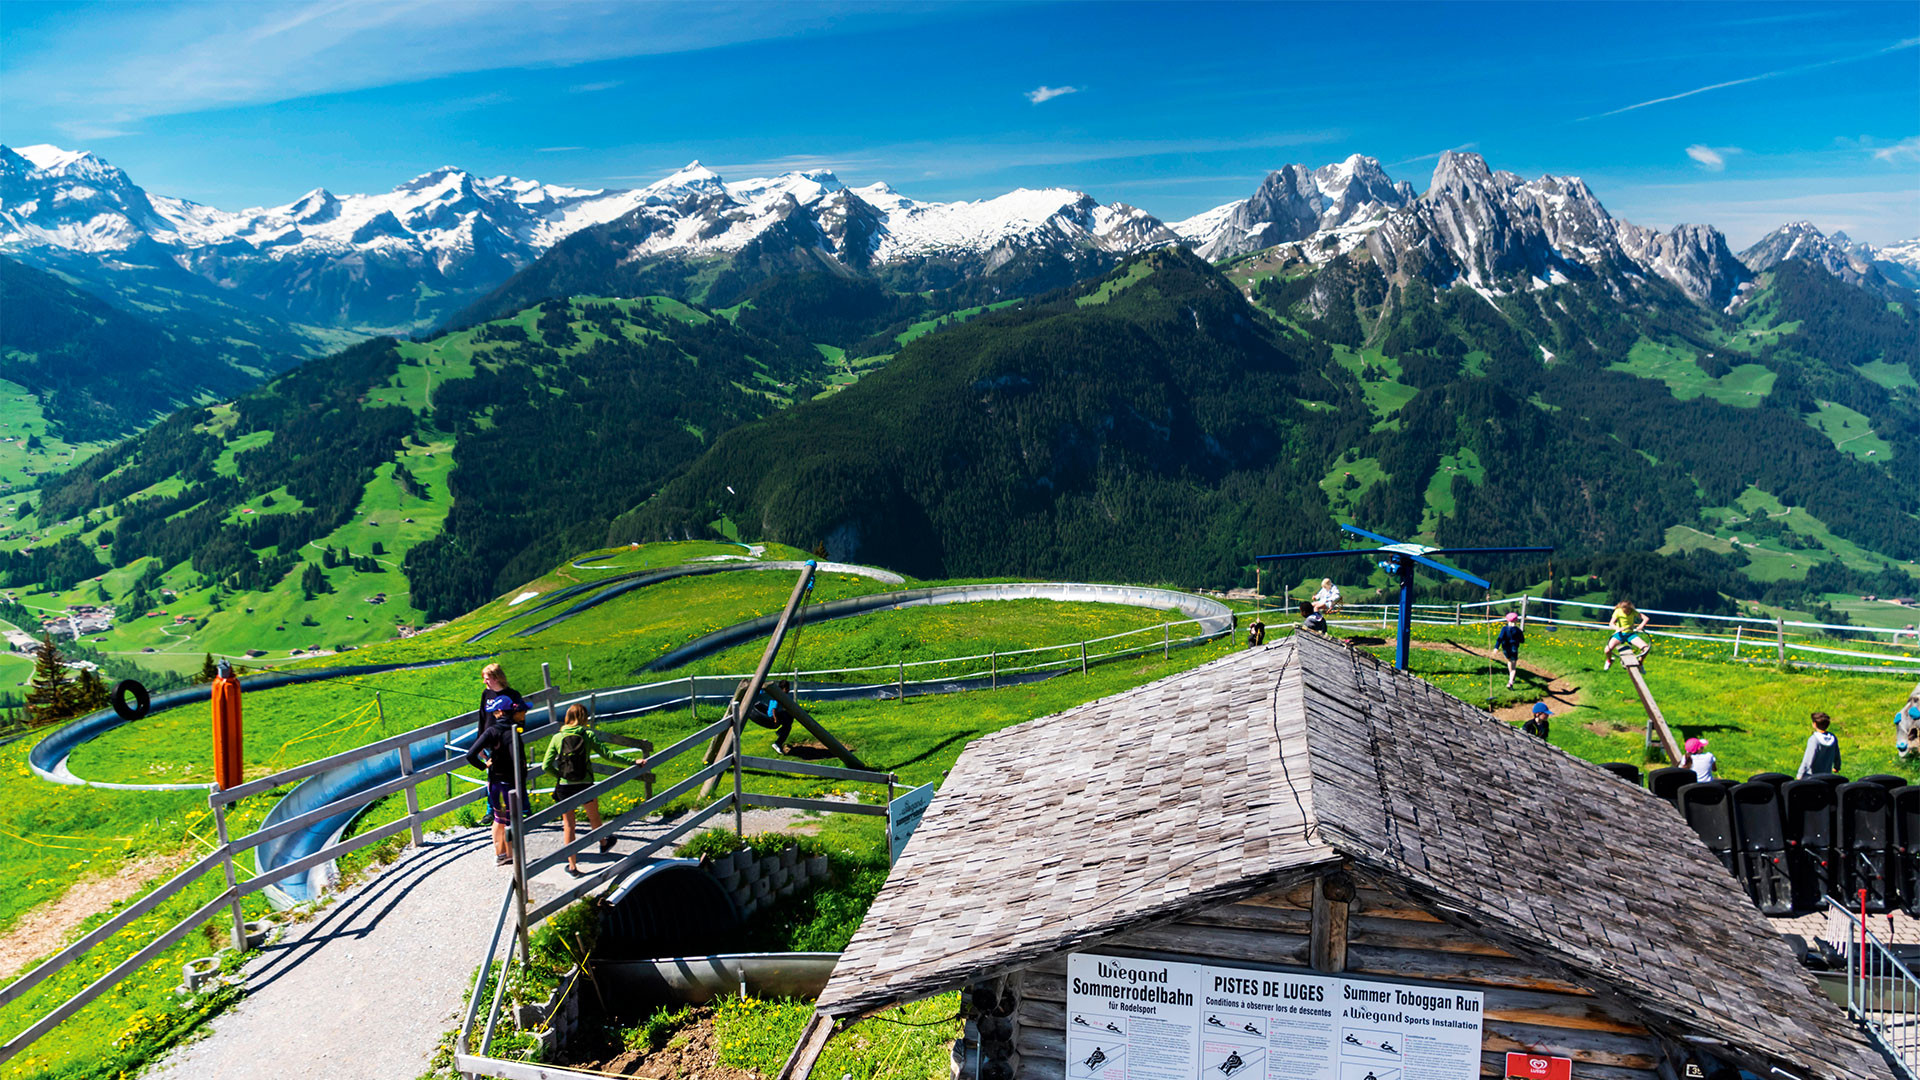 Mountain coaster run on Rellerli mountain, close to Gstaad, Switzerland